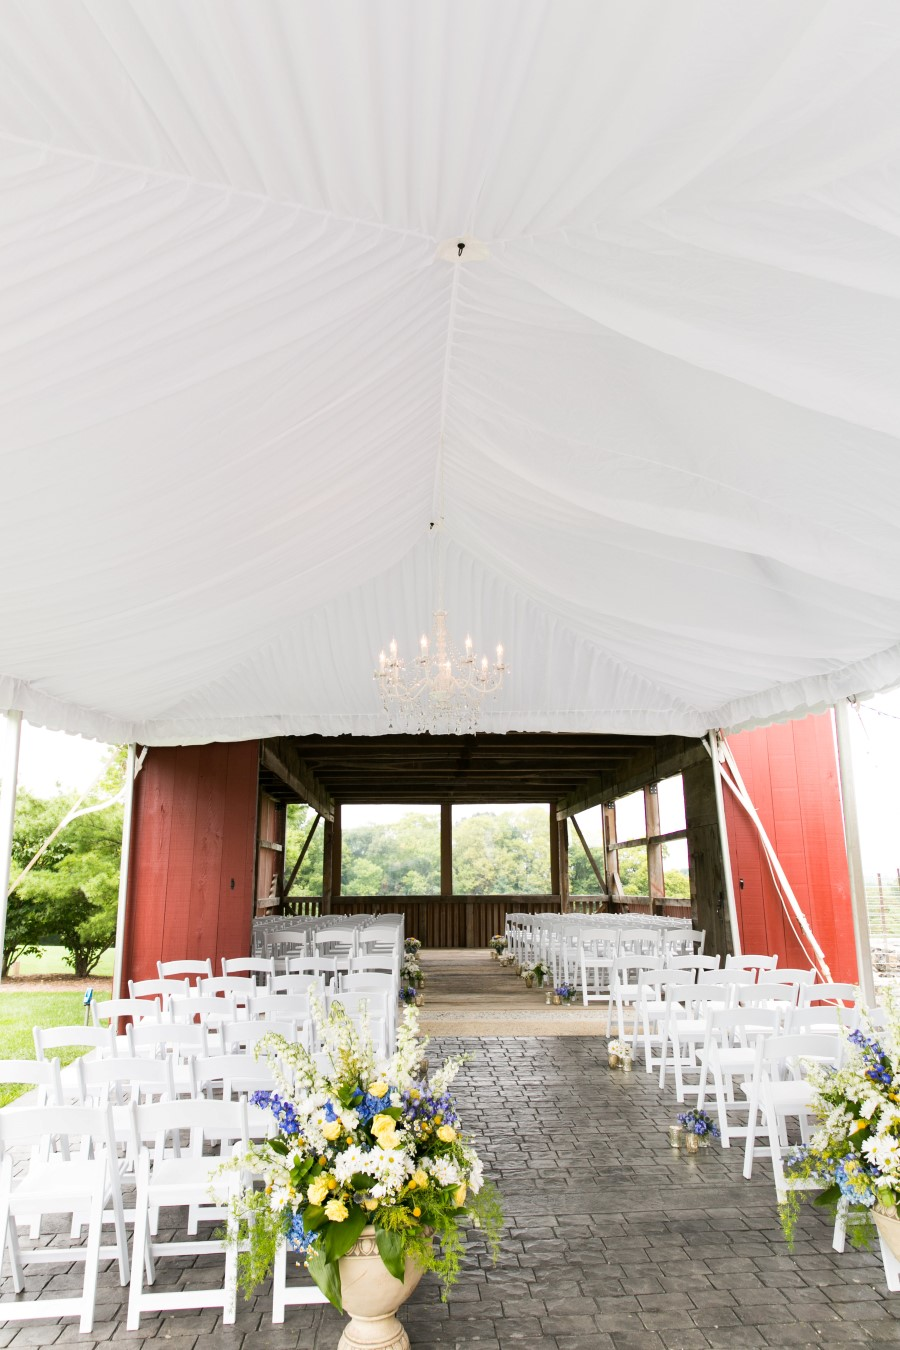 Ceiling Liner in a 20'x30' Frame Tent at the Farm at Eagles Ridge, Photo by Brittney Kreider Photography